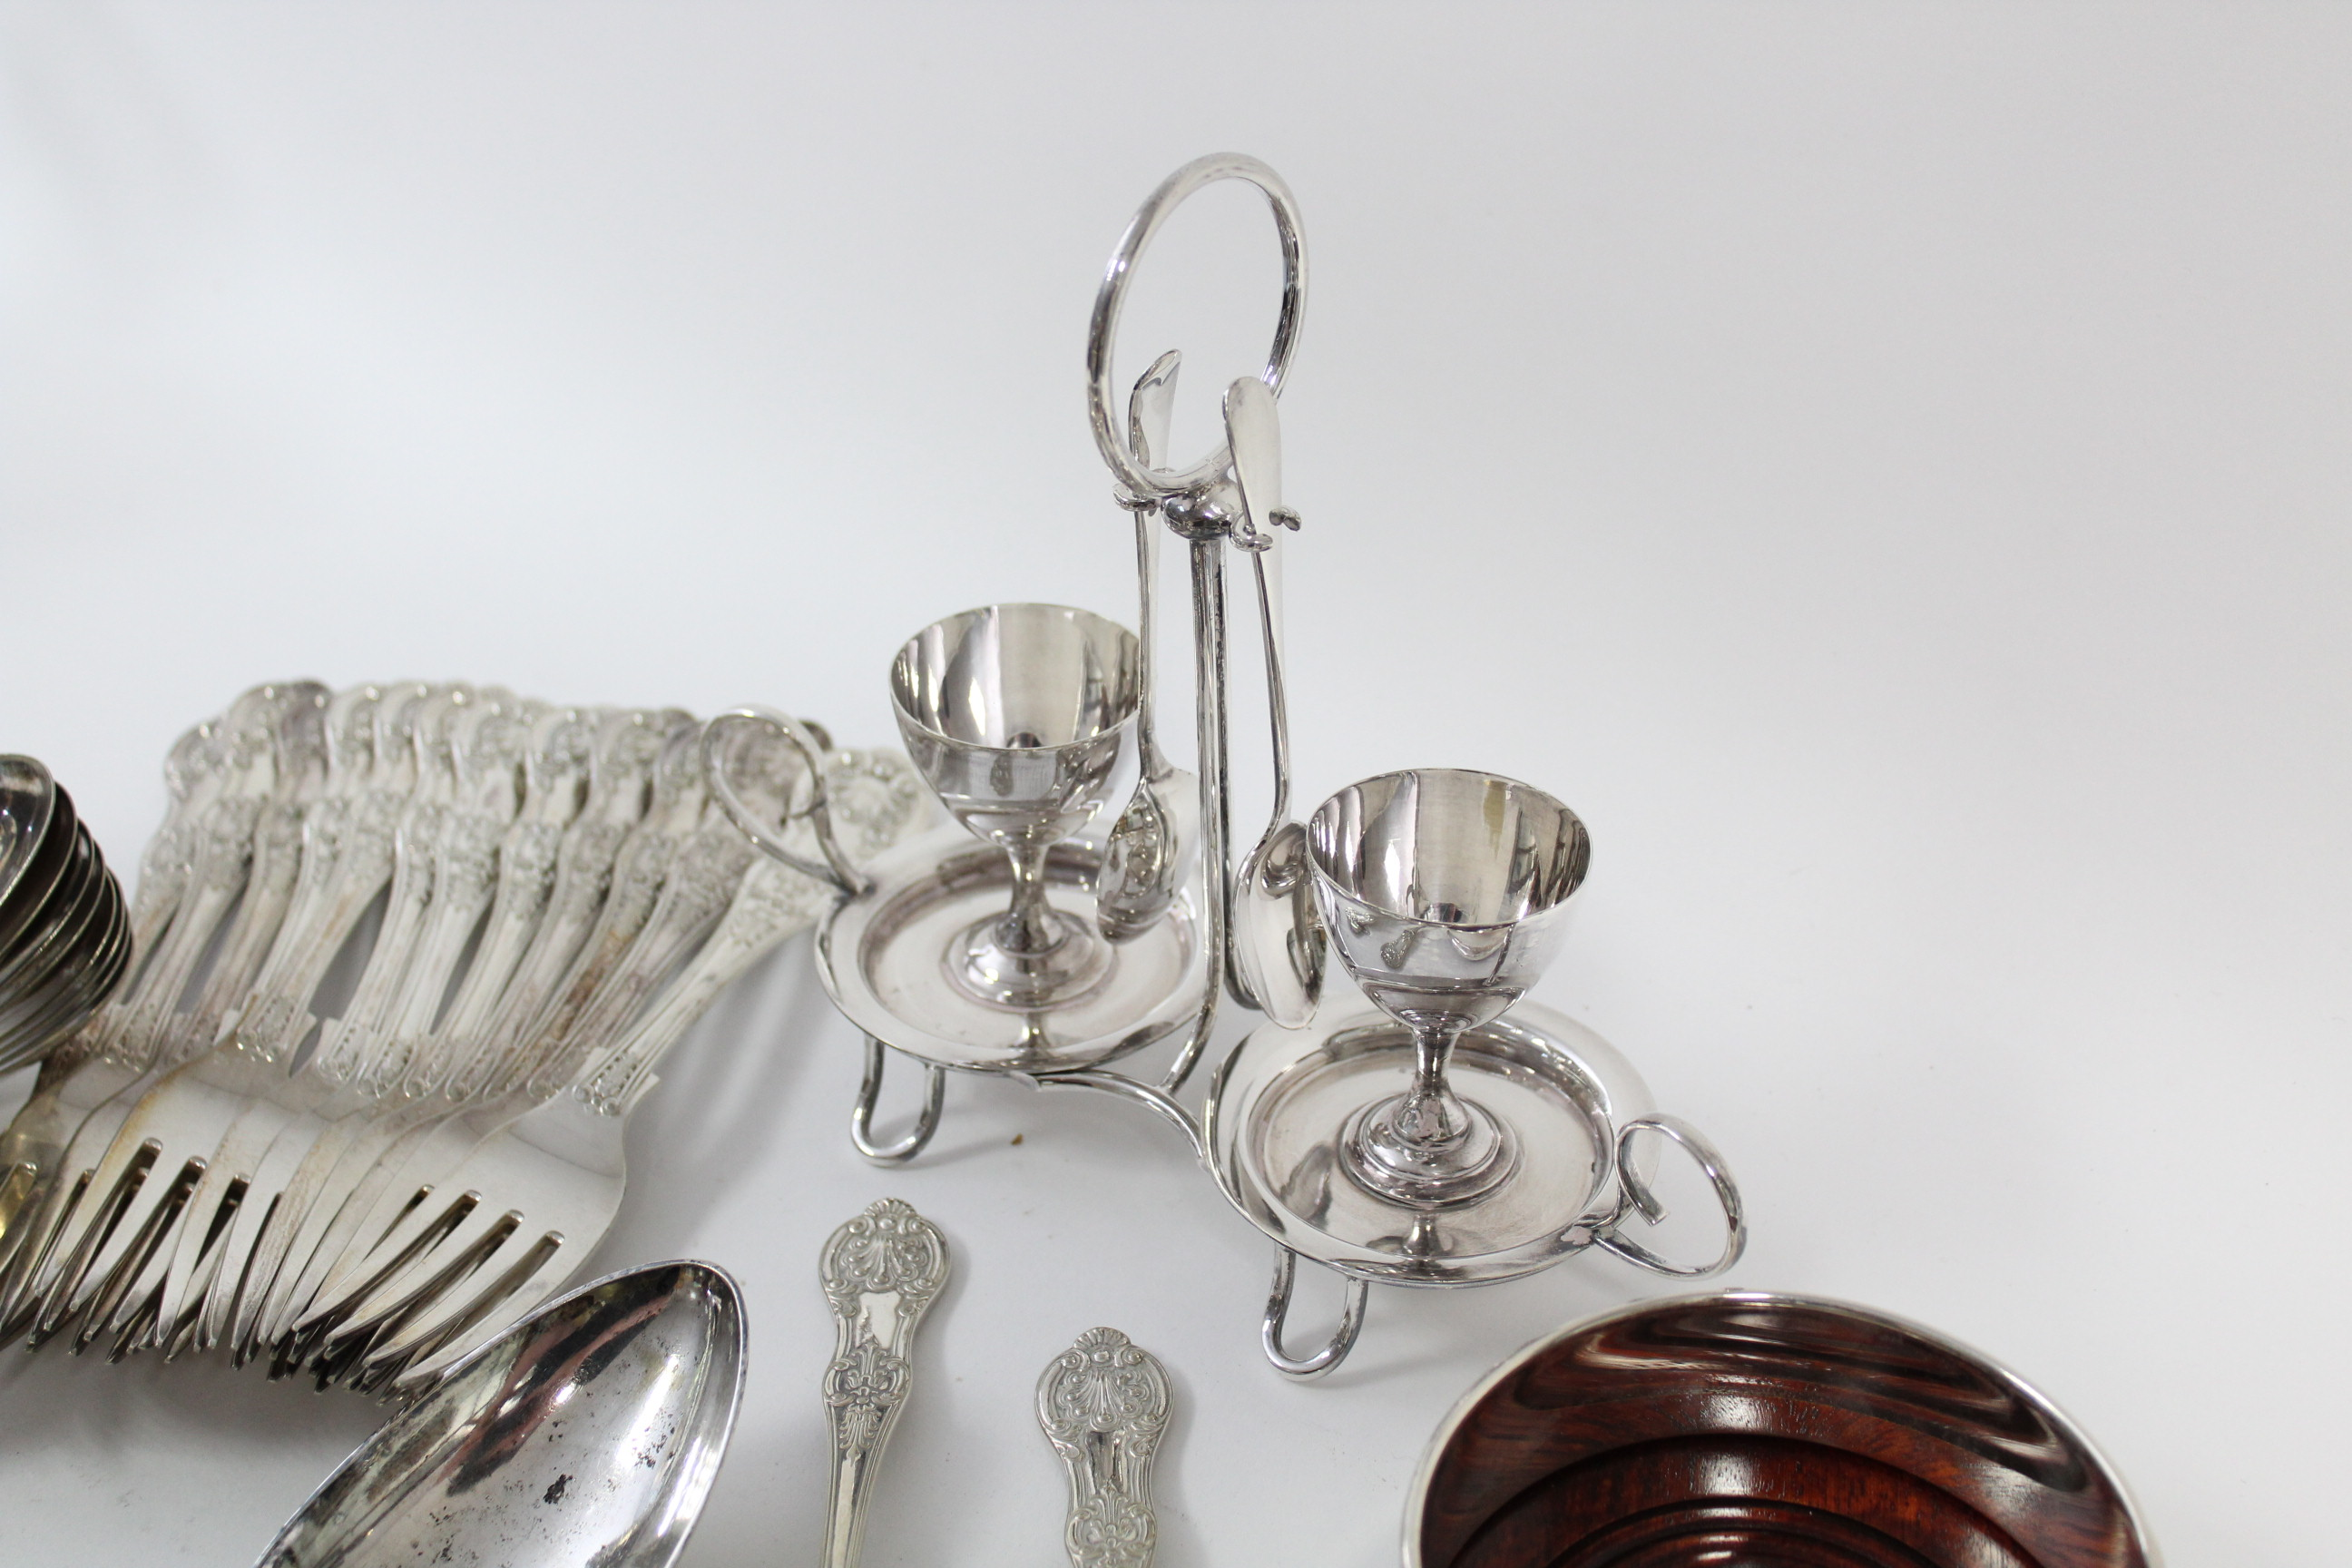 A part service of Queen's pattern flatware, comprising: eight table spoons, twelve table forks, - Image 4 of 4